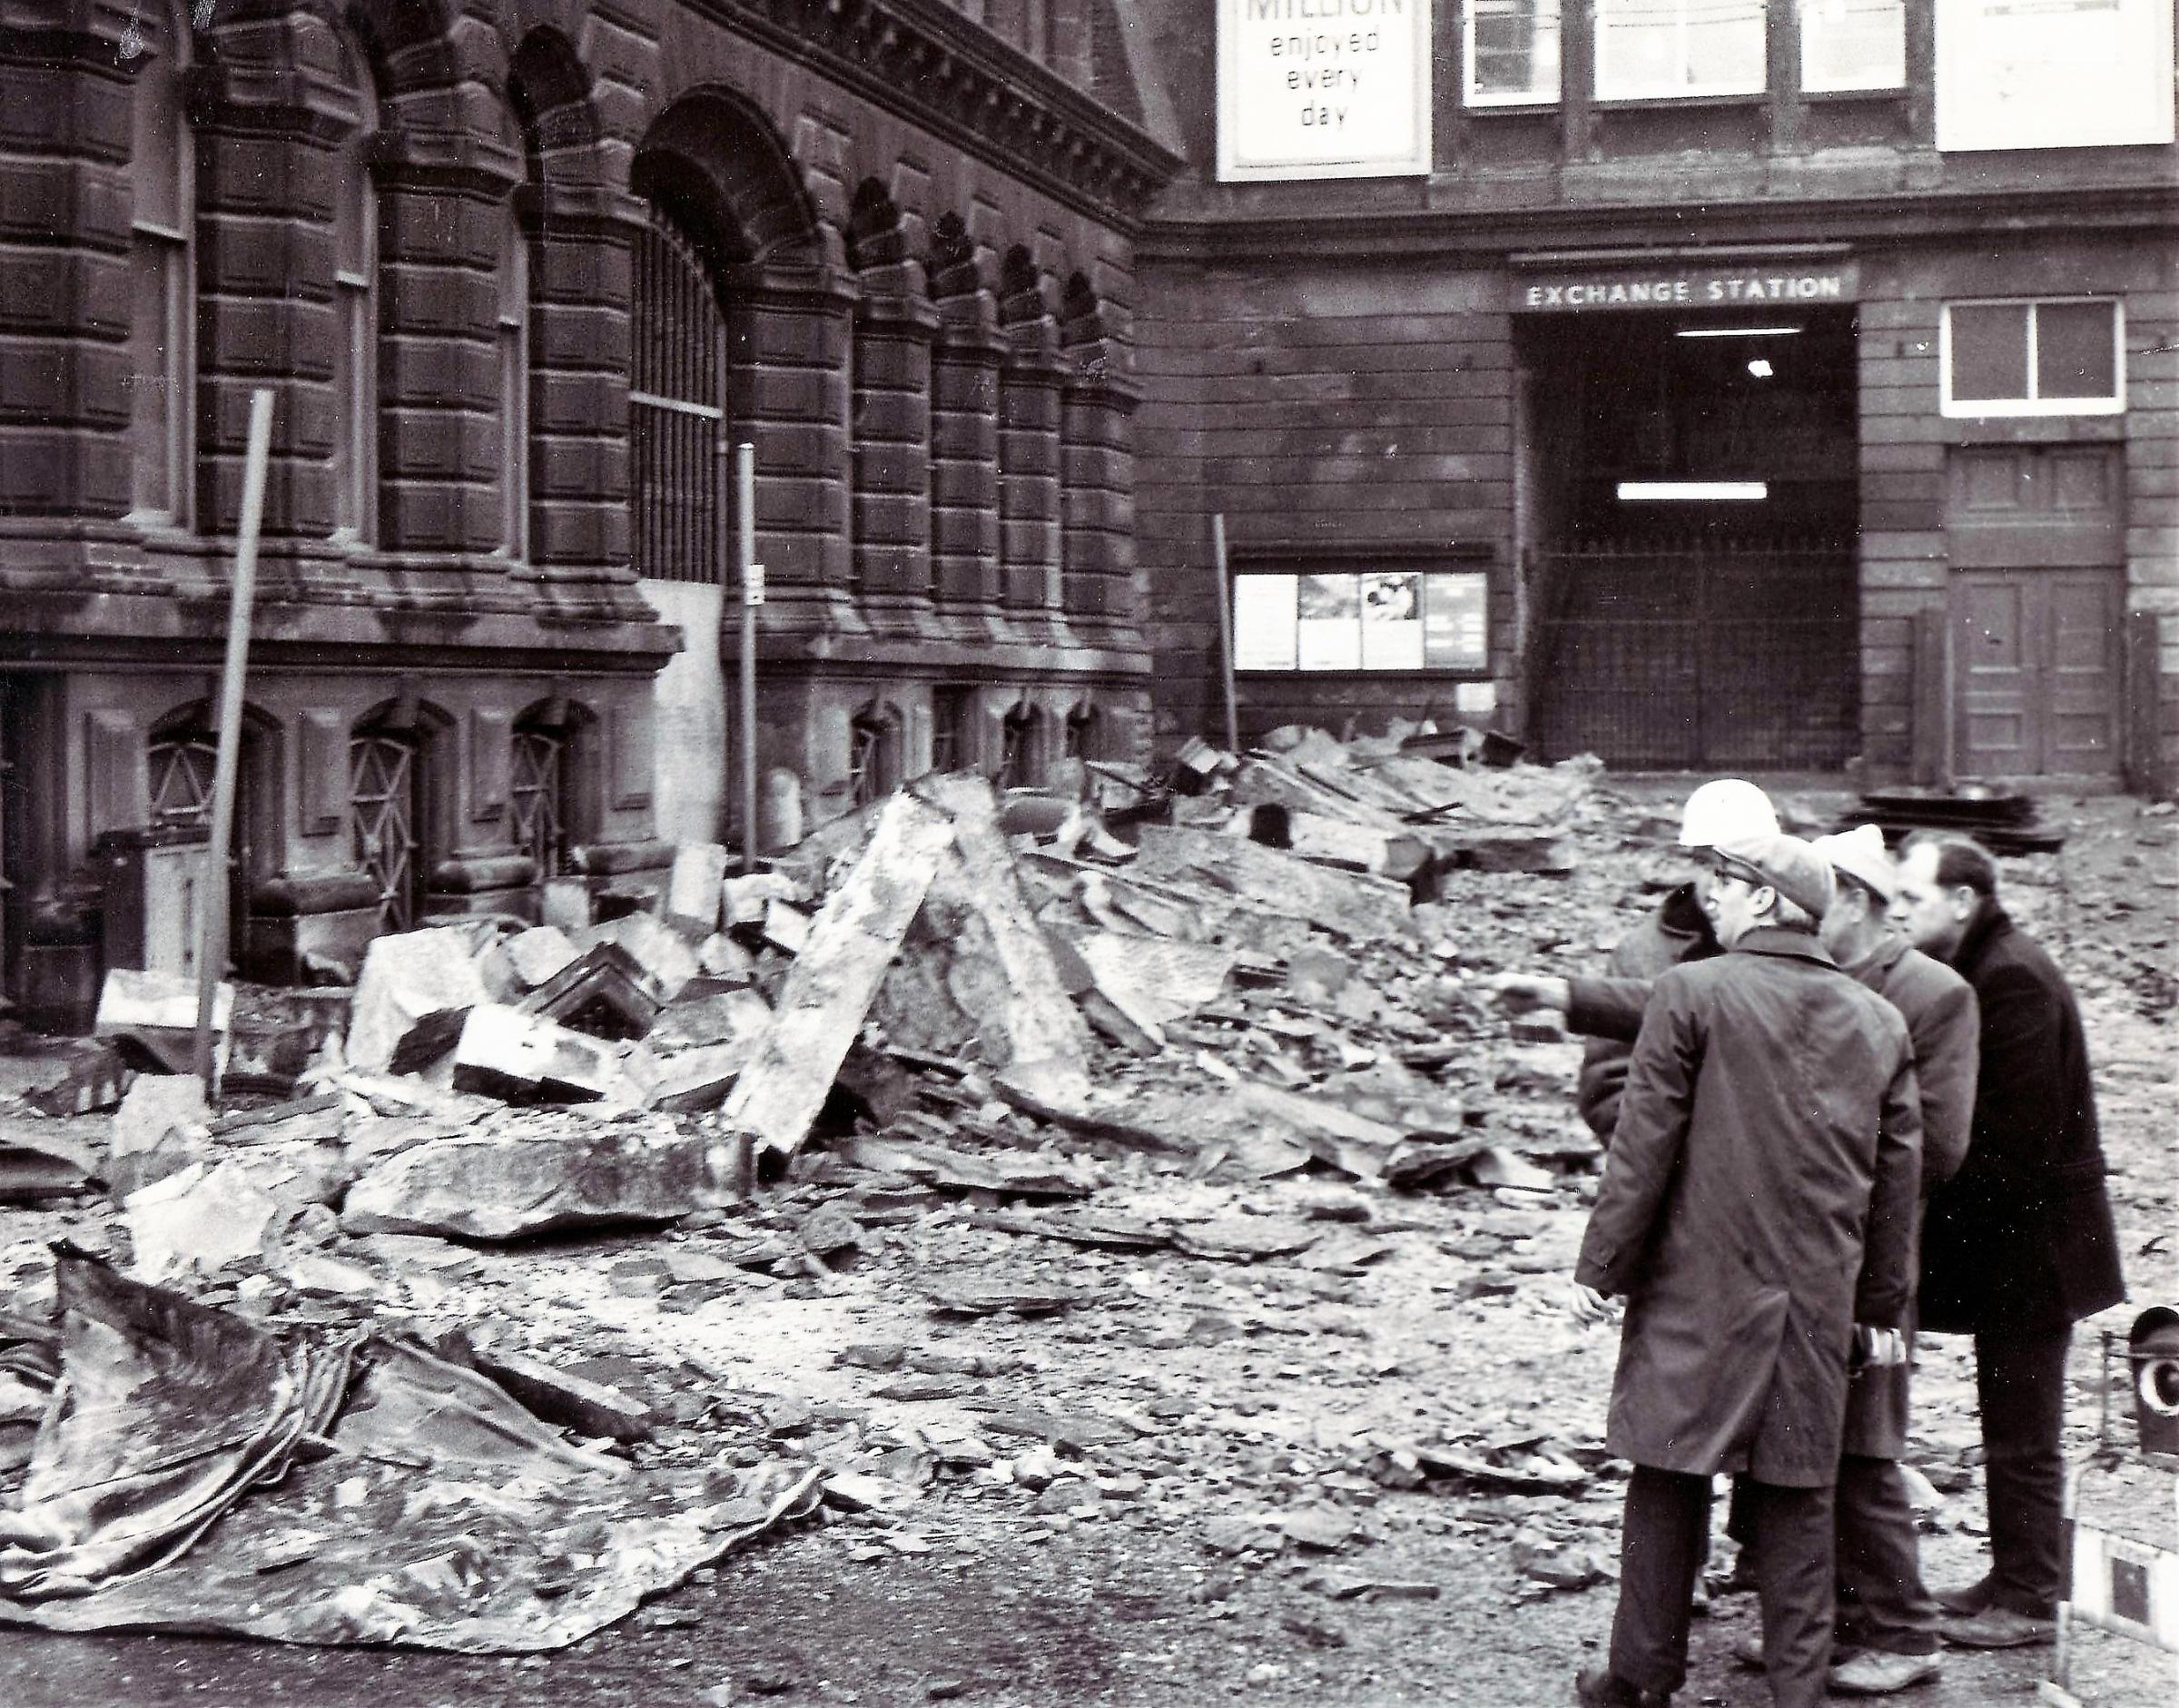 Sixty tons of debris crashed down in Bradford during severe gales in March 1968